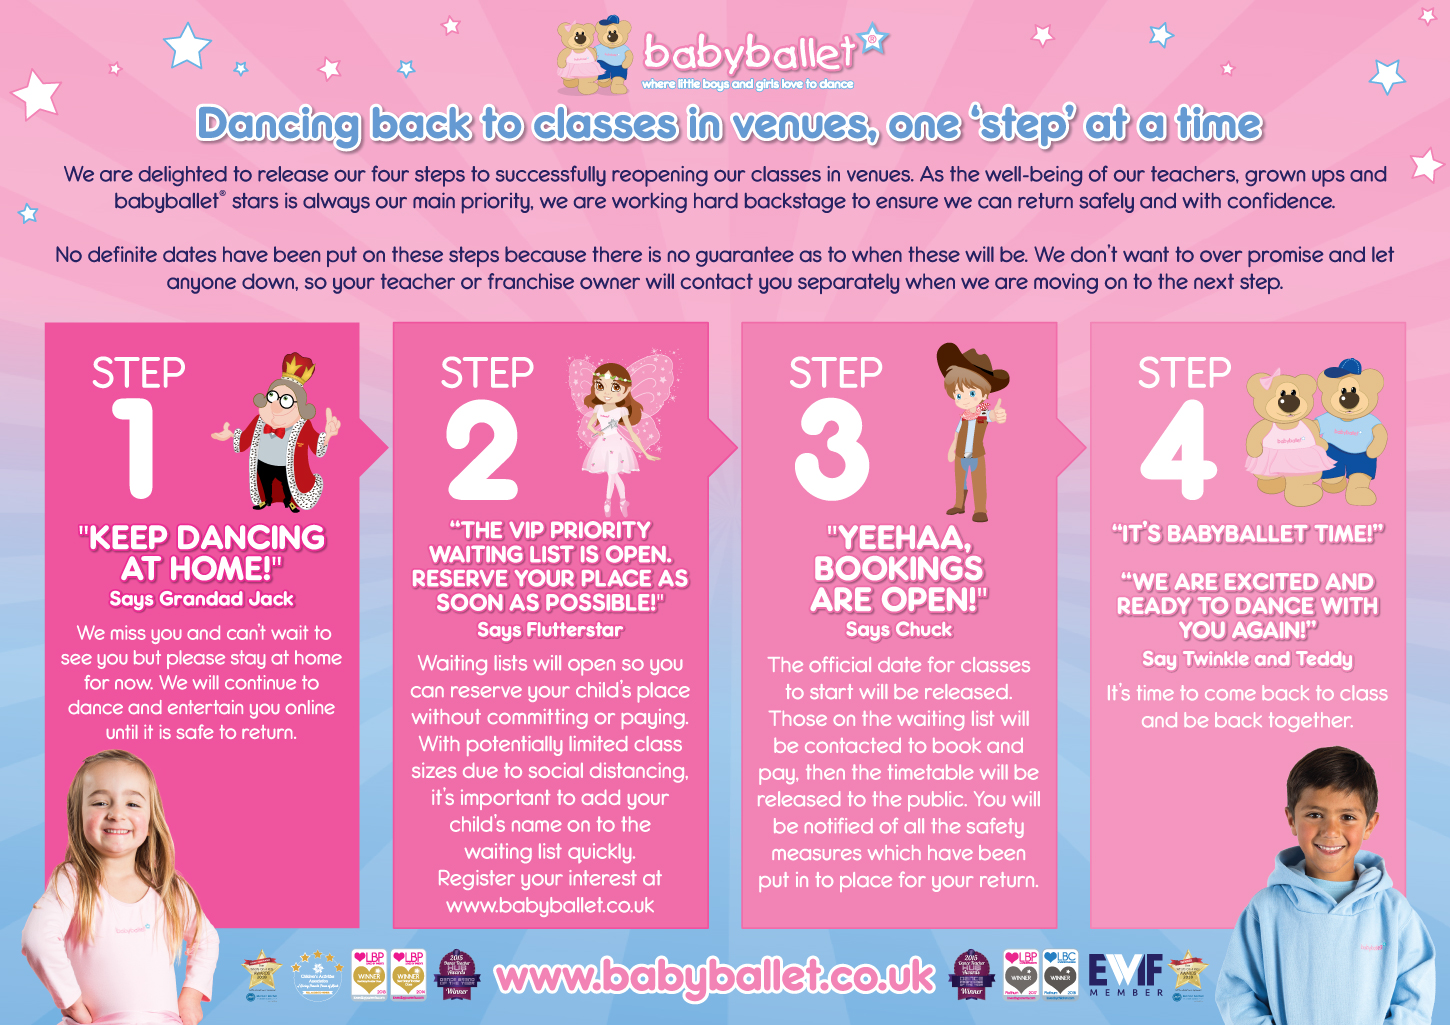 babyballet 4 step plan to return to physical classes after the pandemic